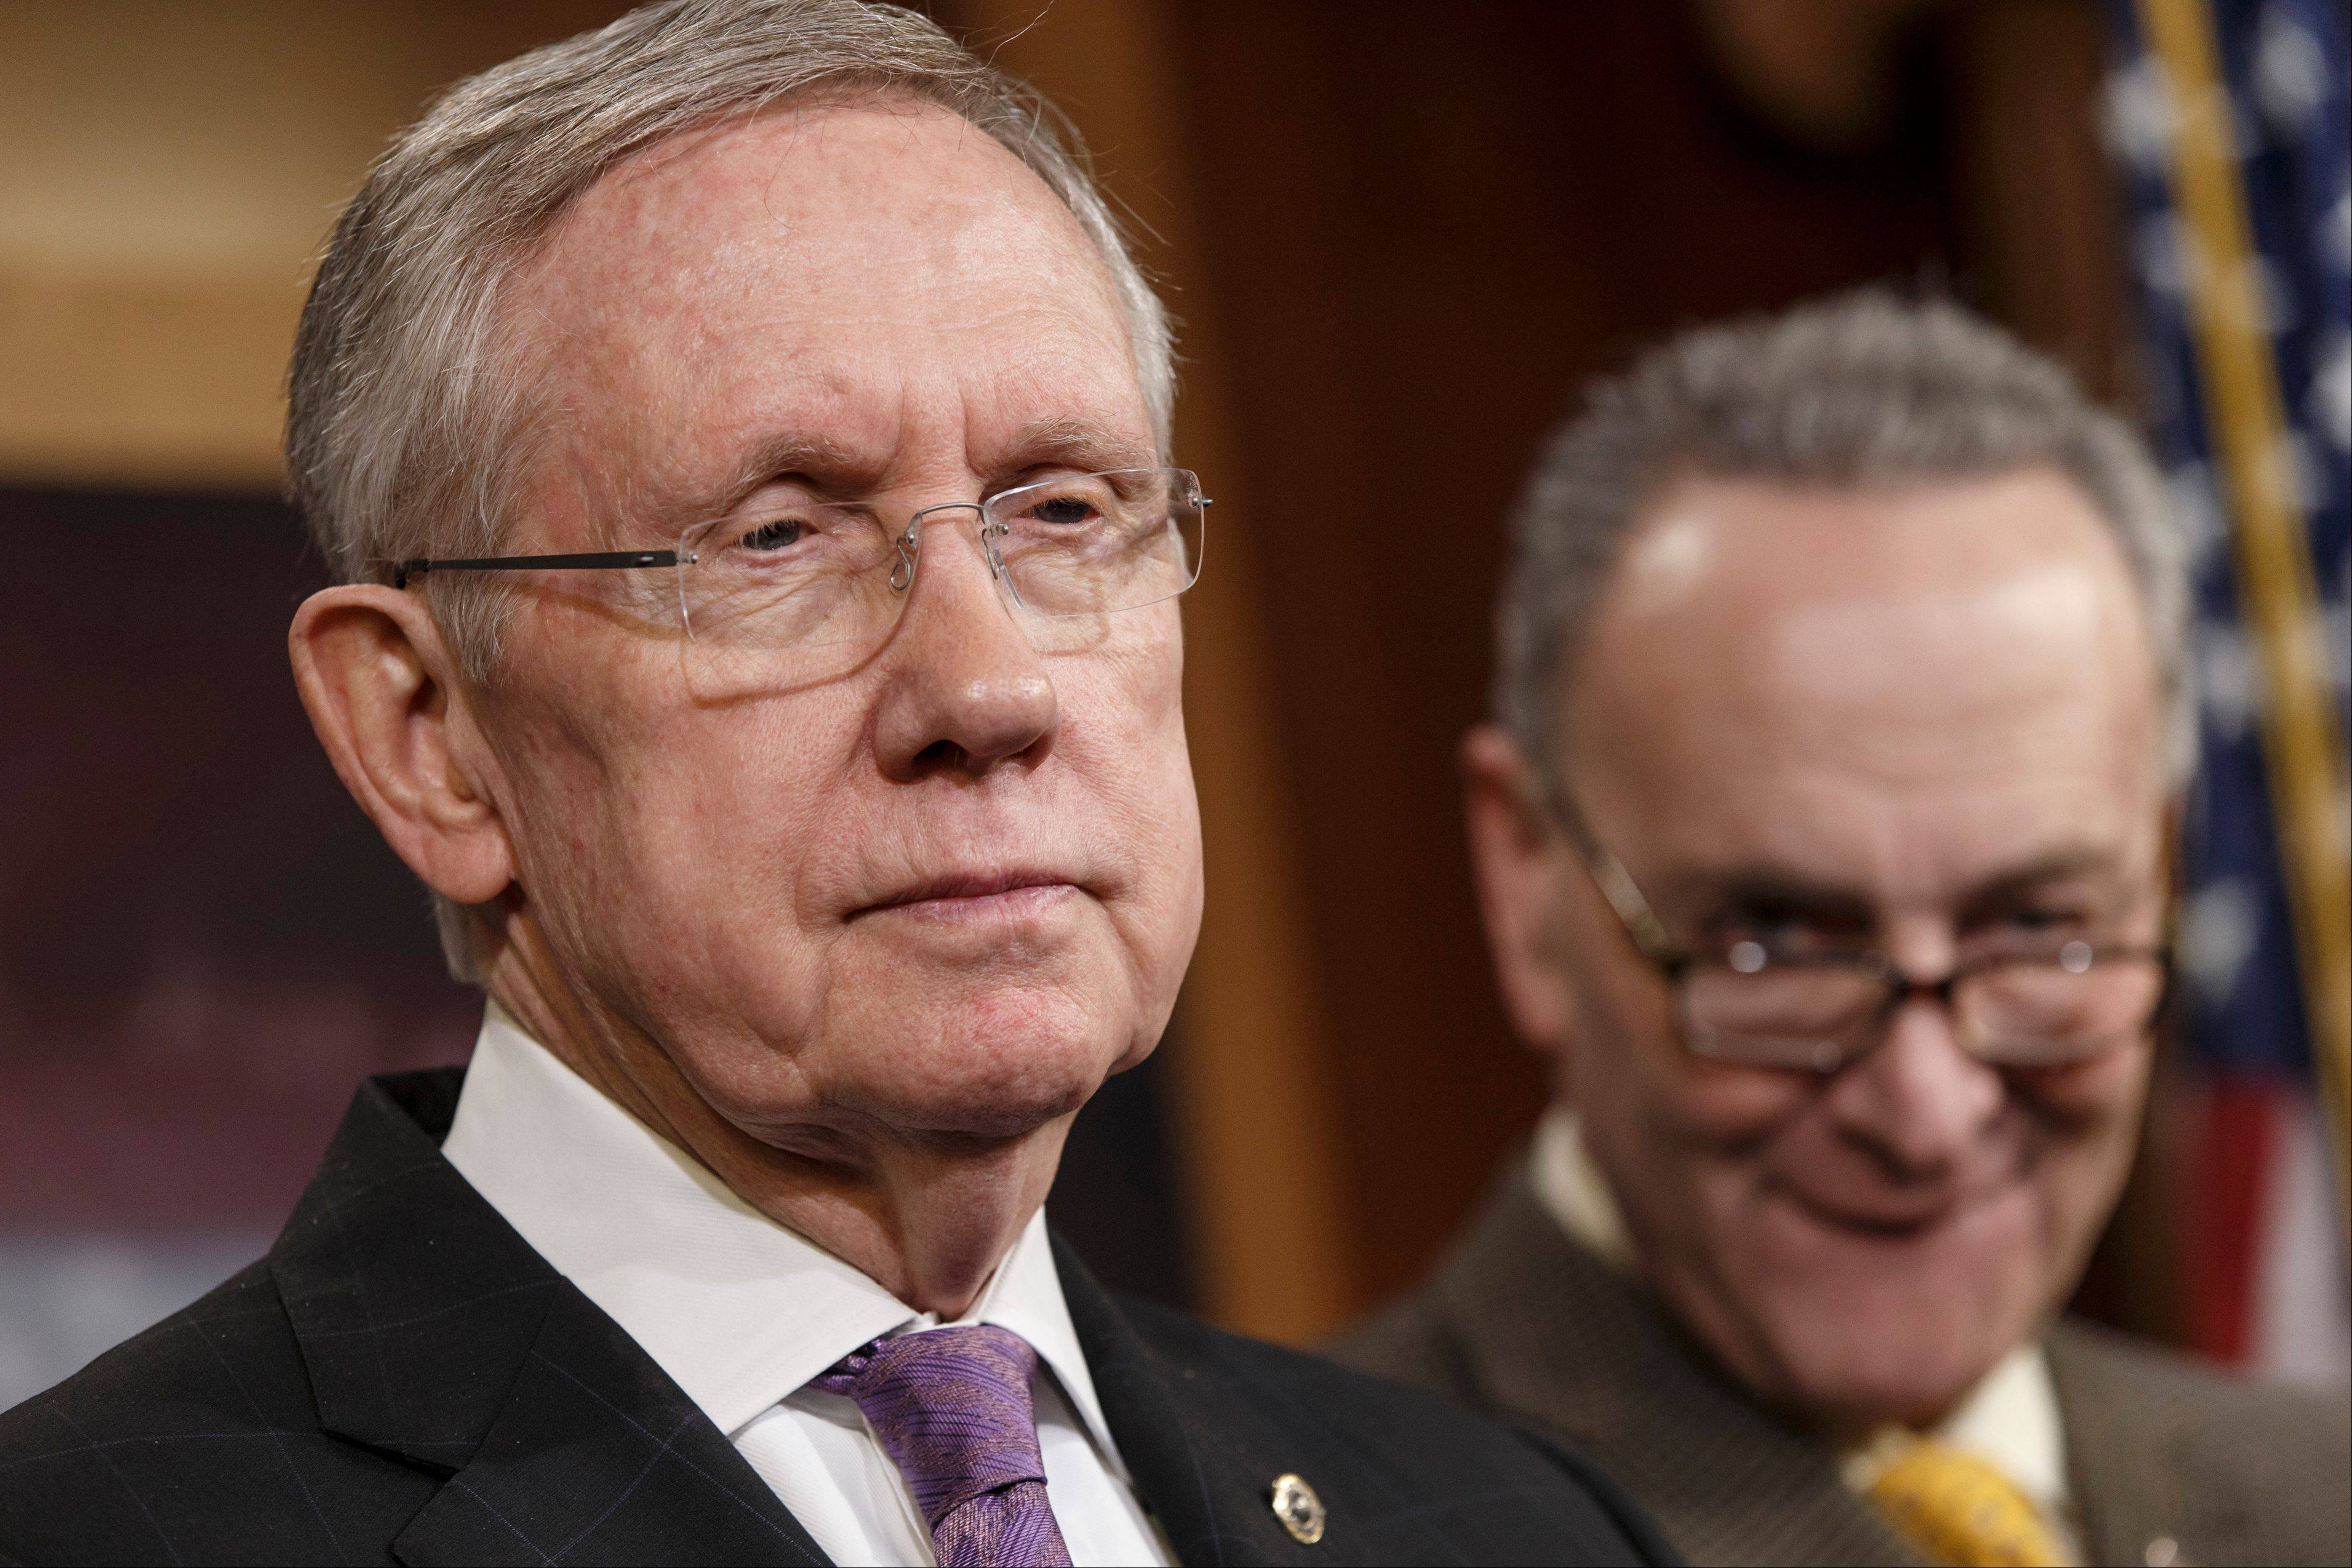 Senate Majority Leader Harry Reid, left, accompanied by Sen. Charles Schumer, listens during a news conference on Capitol Hill in Washington last Dec. 16. Congress returns to work Monday with election-year politics certain to shape an already limited agenda.